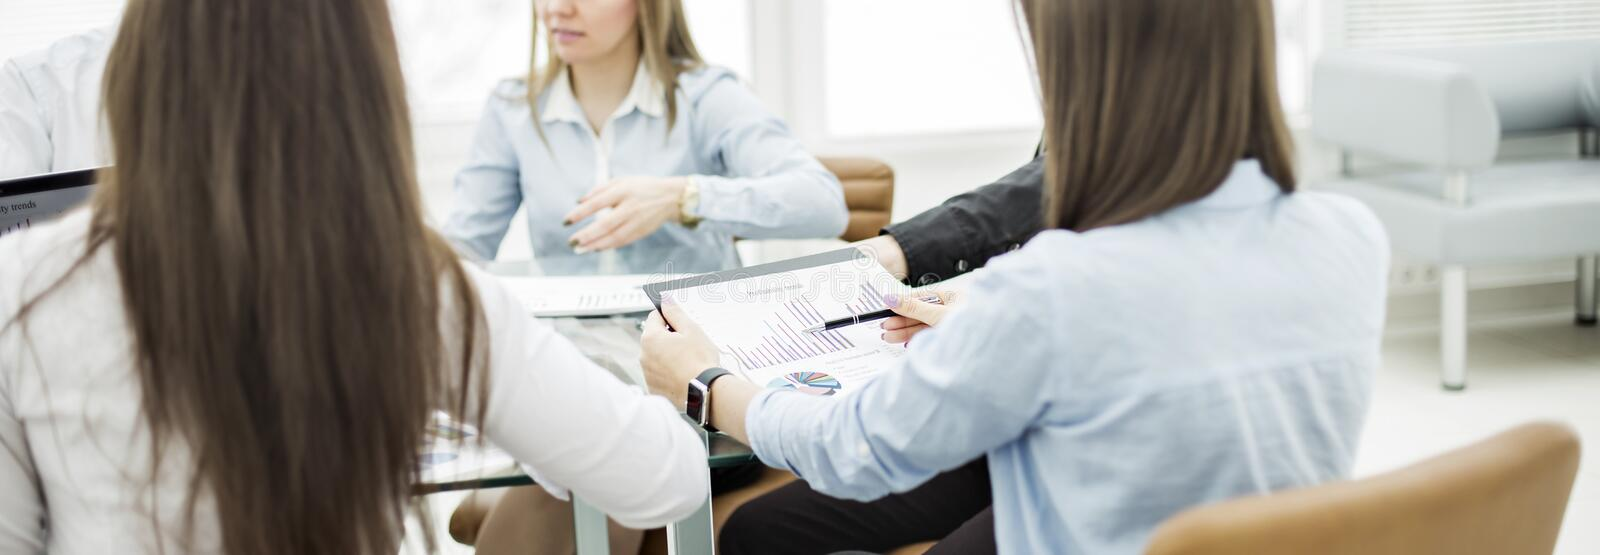 business team at a working conference sitting at a Desk and discussing important issues stock photo